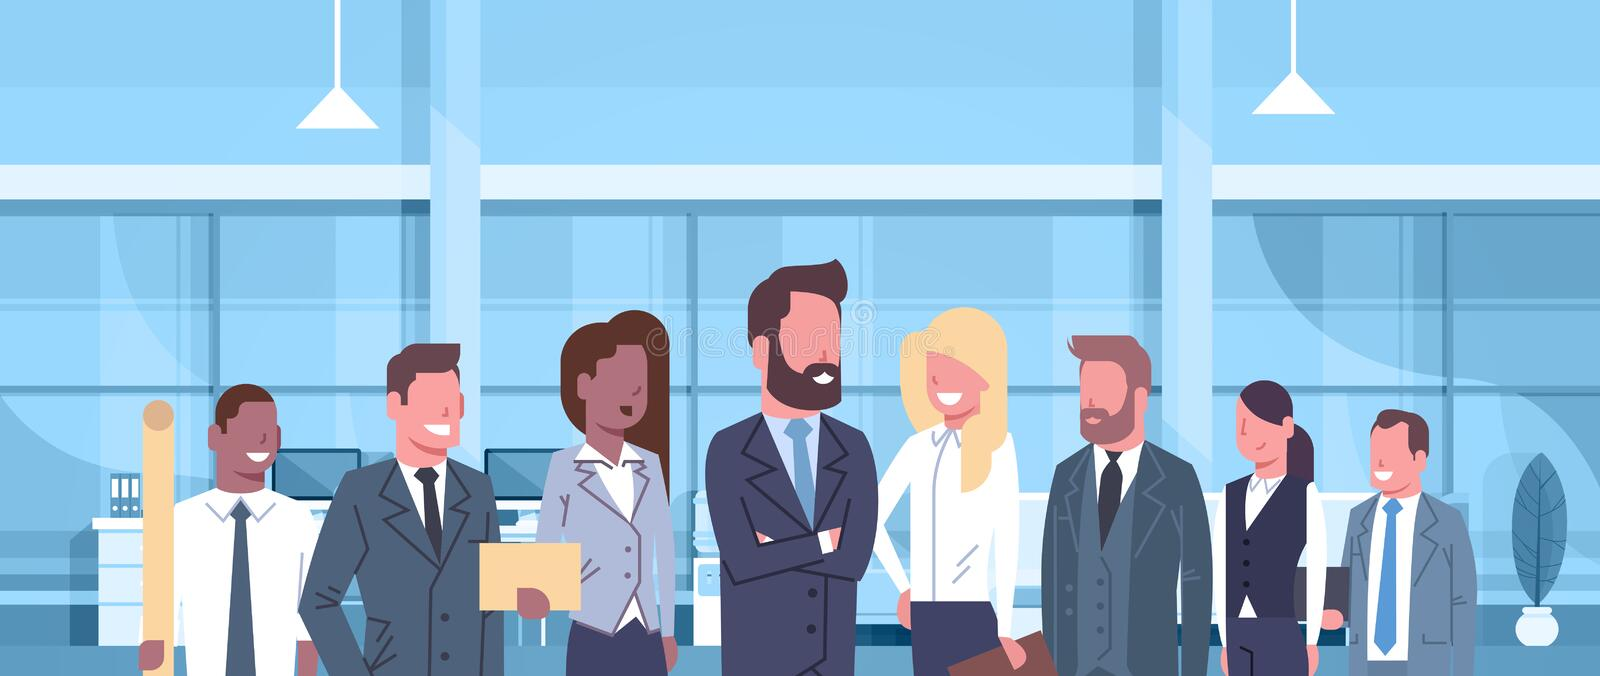 Group Of Business People In Modern Office Concept Team Of Successful Businessmen And Businesswomen Professionals At. Workplace Flat Vector Illustration royalty free illustration